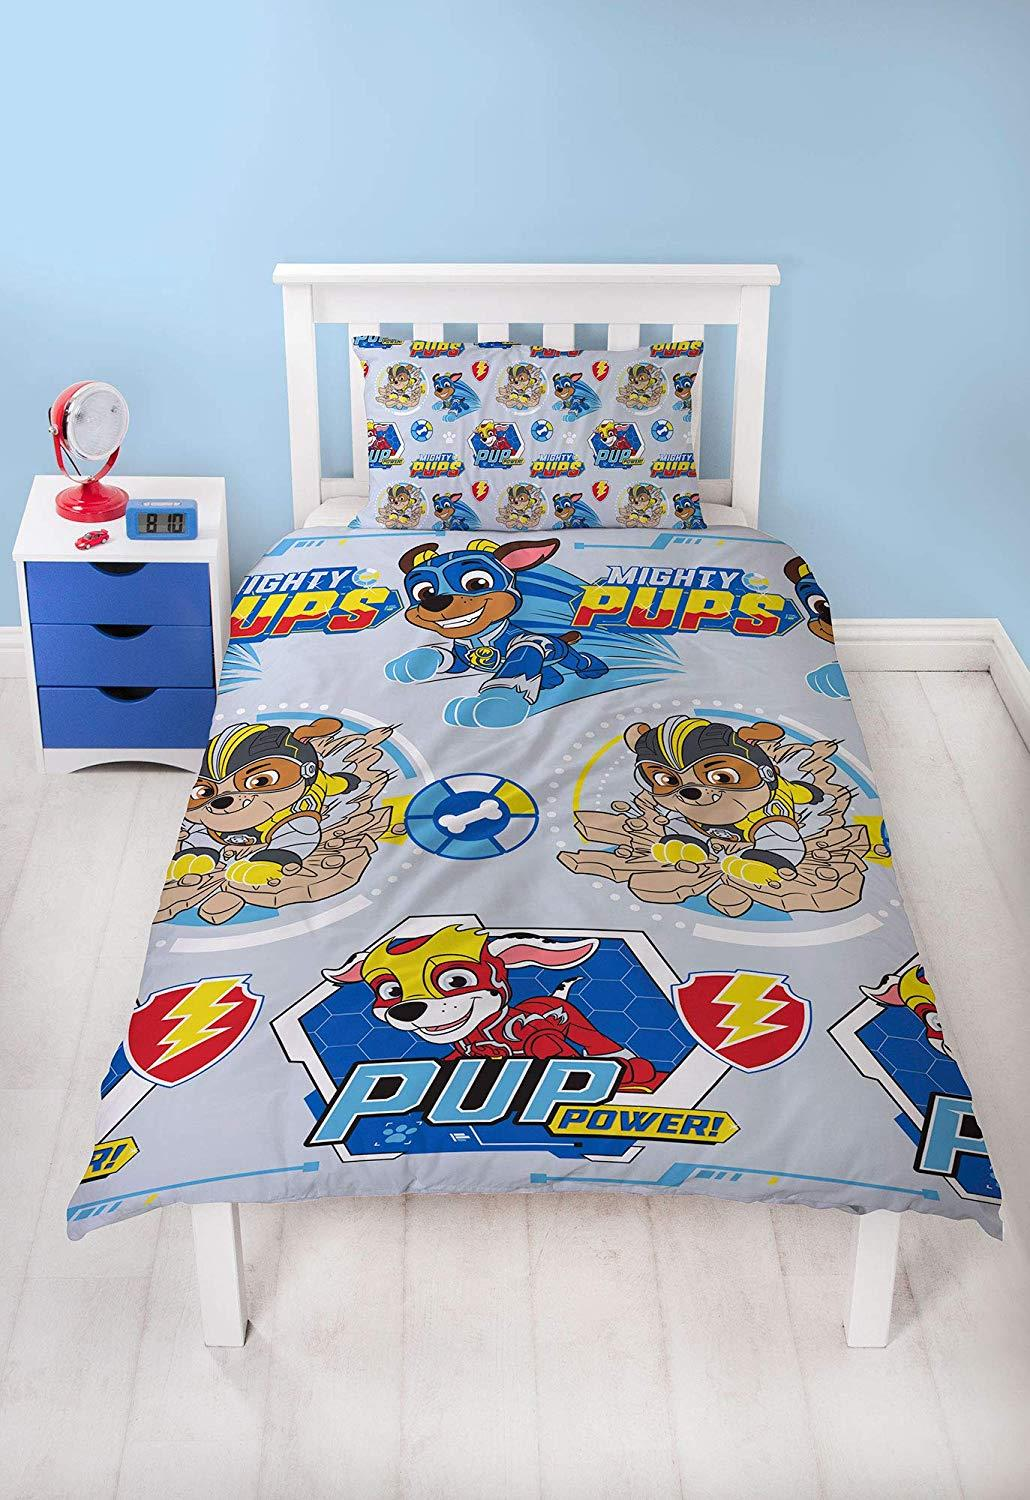 Official-Paw-Patrol-Licensed-Duvet-Covers-Single-Double-Chase-Skye-Marshall thumbnail 43